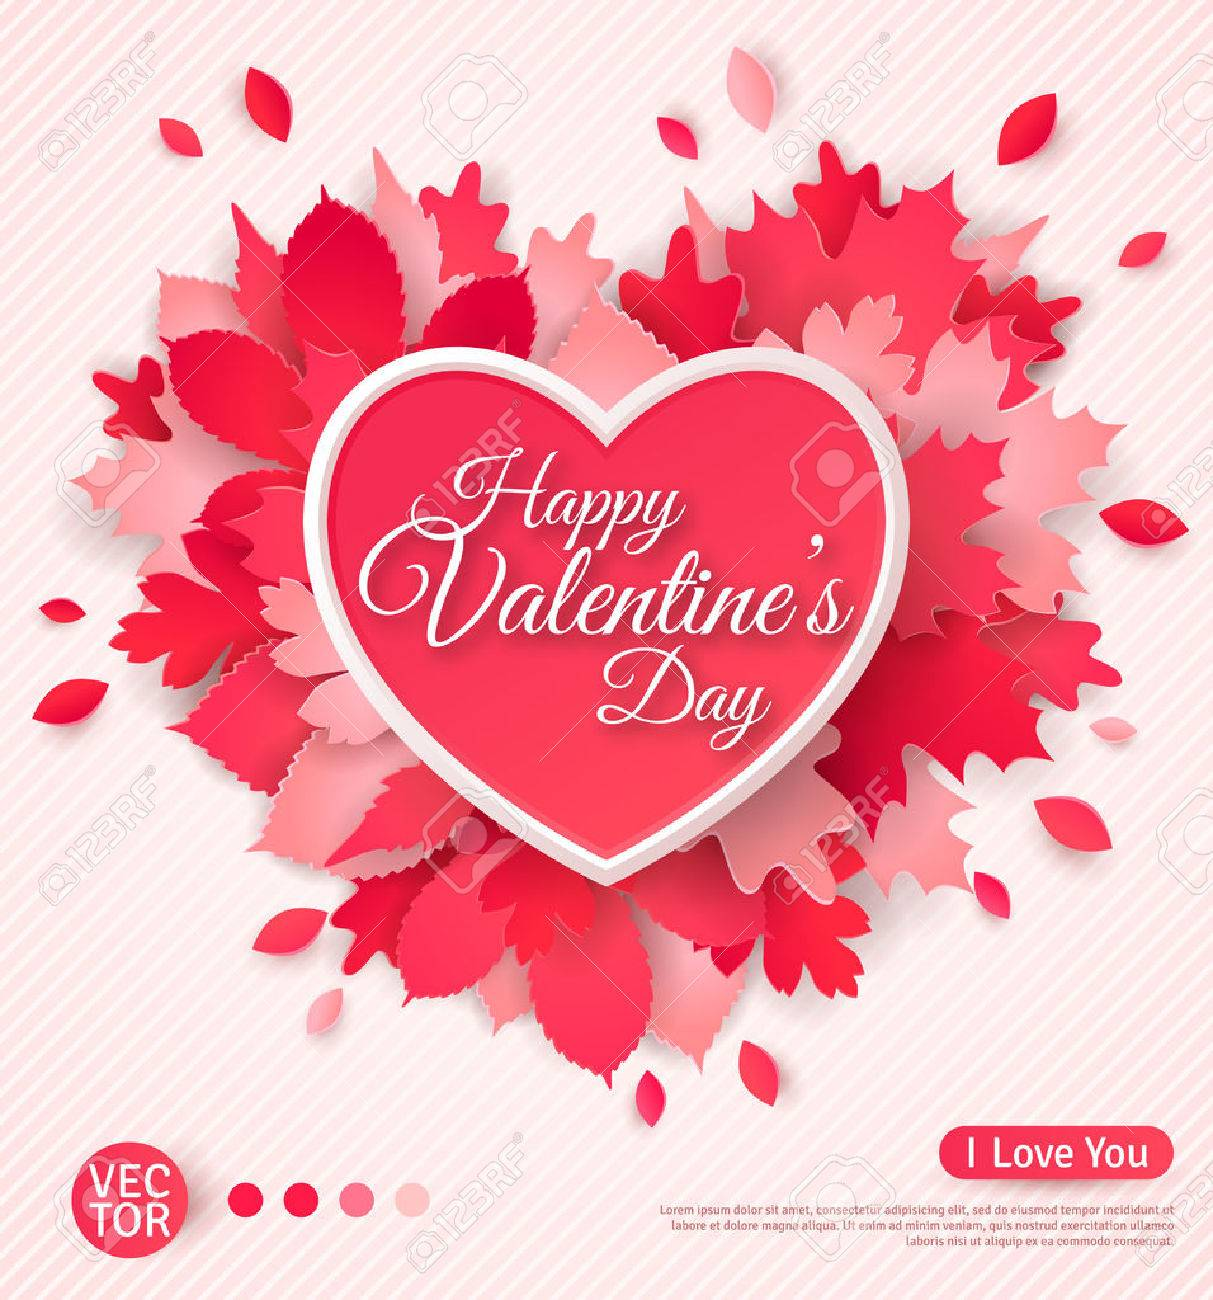 Beautiful Greeting Card With Heart And Leaves Happy Valentines – Valentine Greetings Card